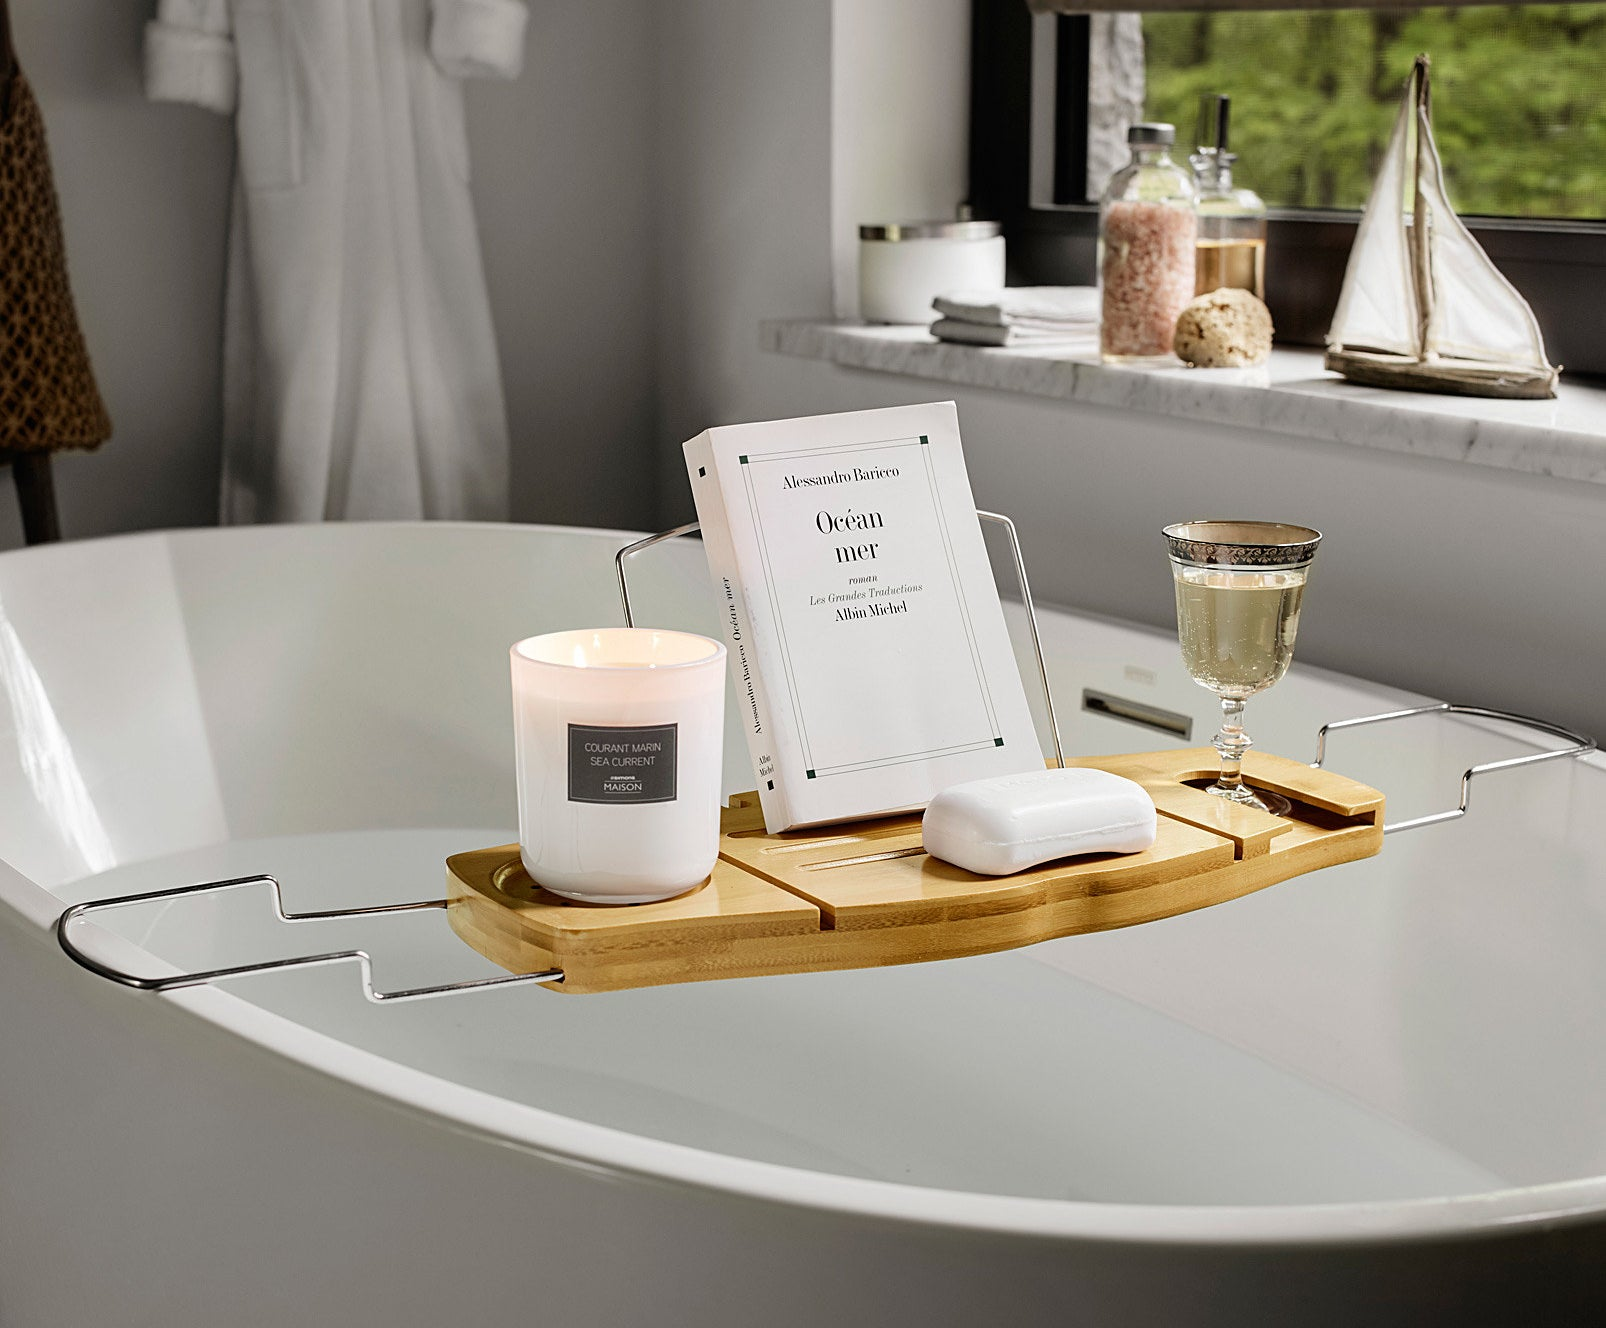 The bathtub tray hovering over a full tub with a candle, book, glasses case, and glass of wine on top